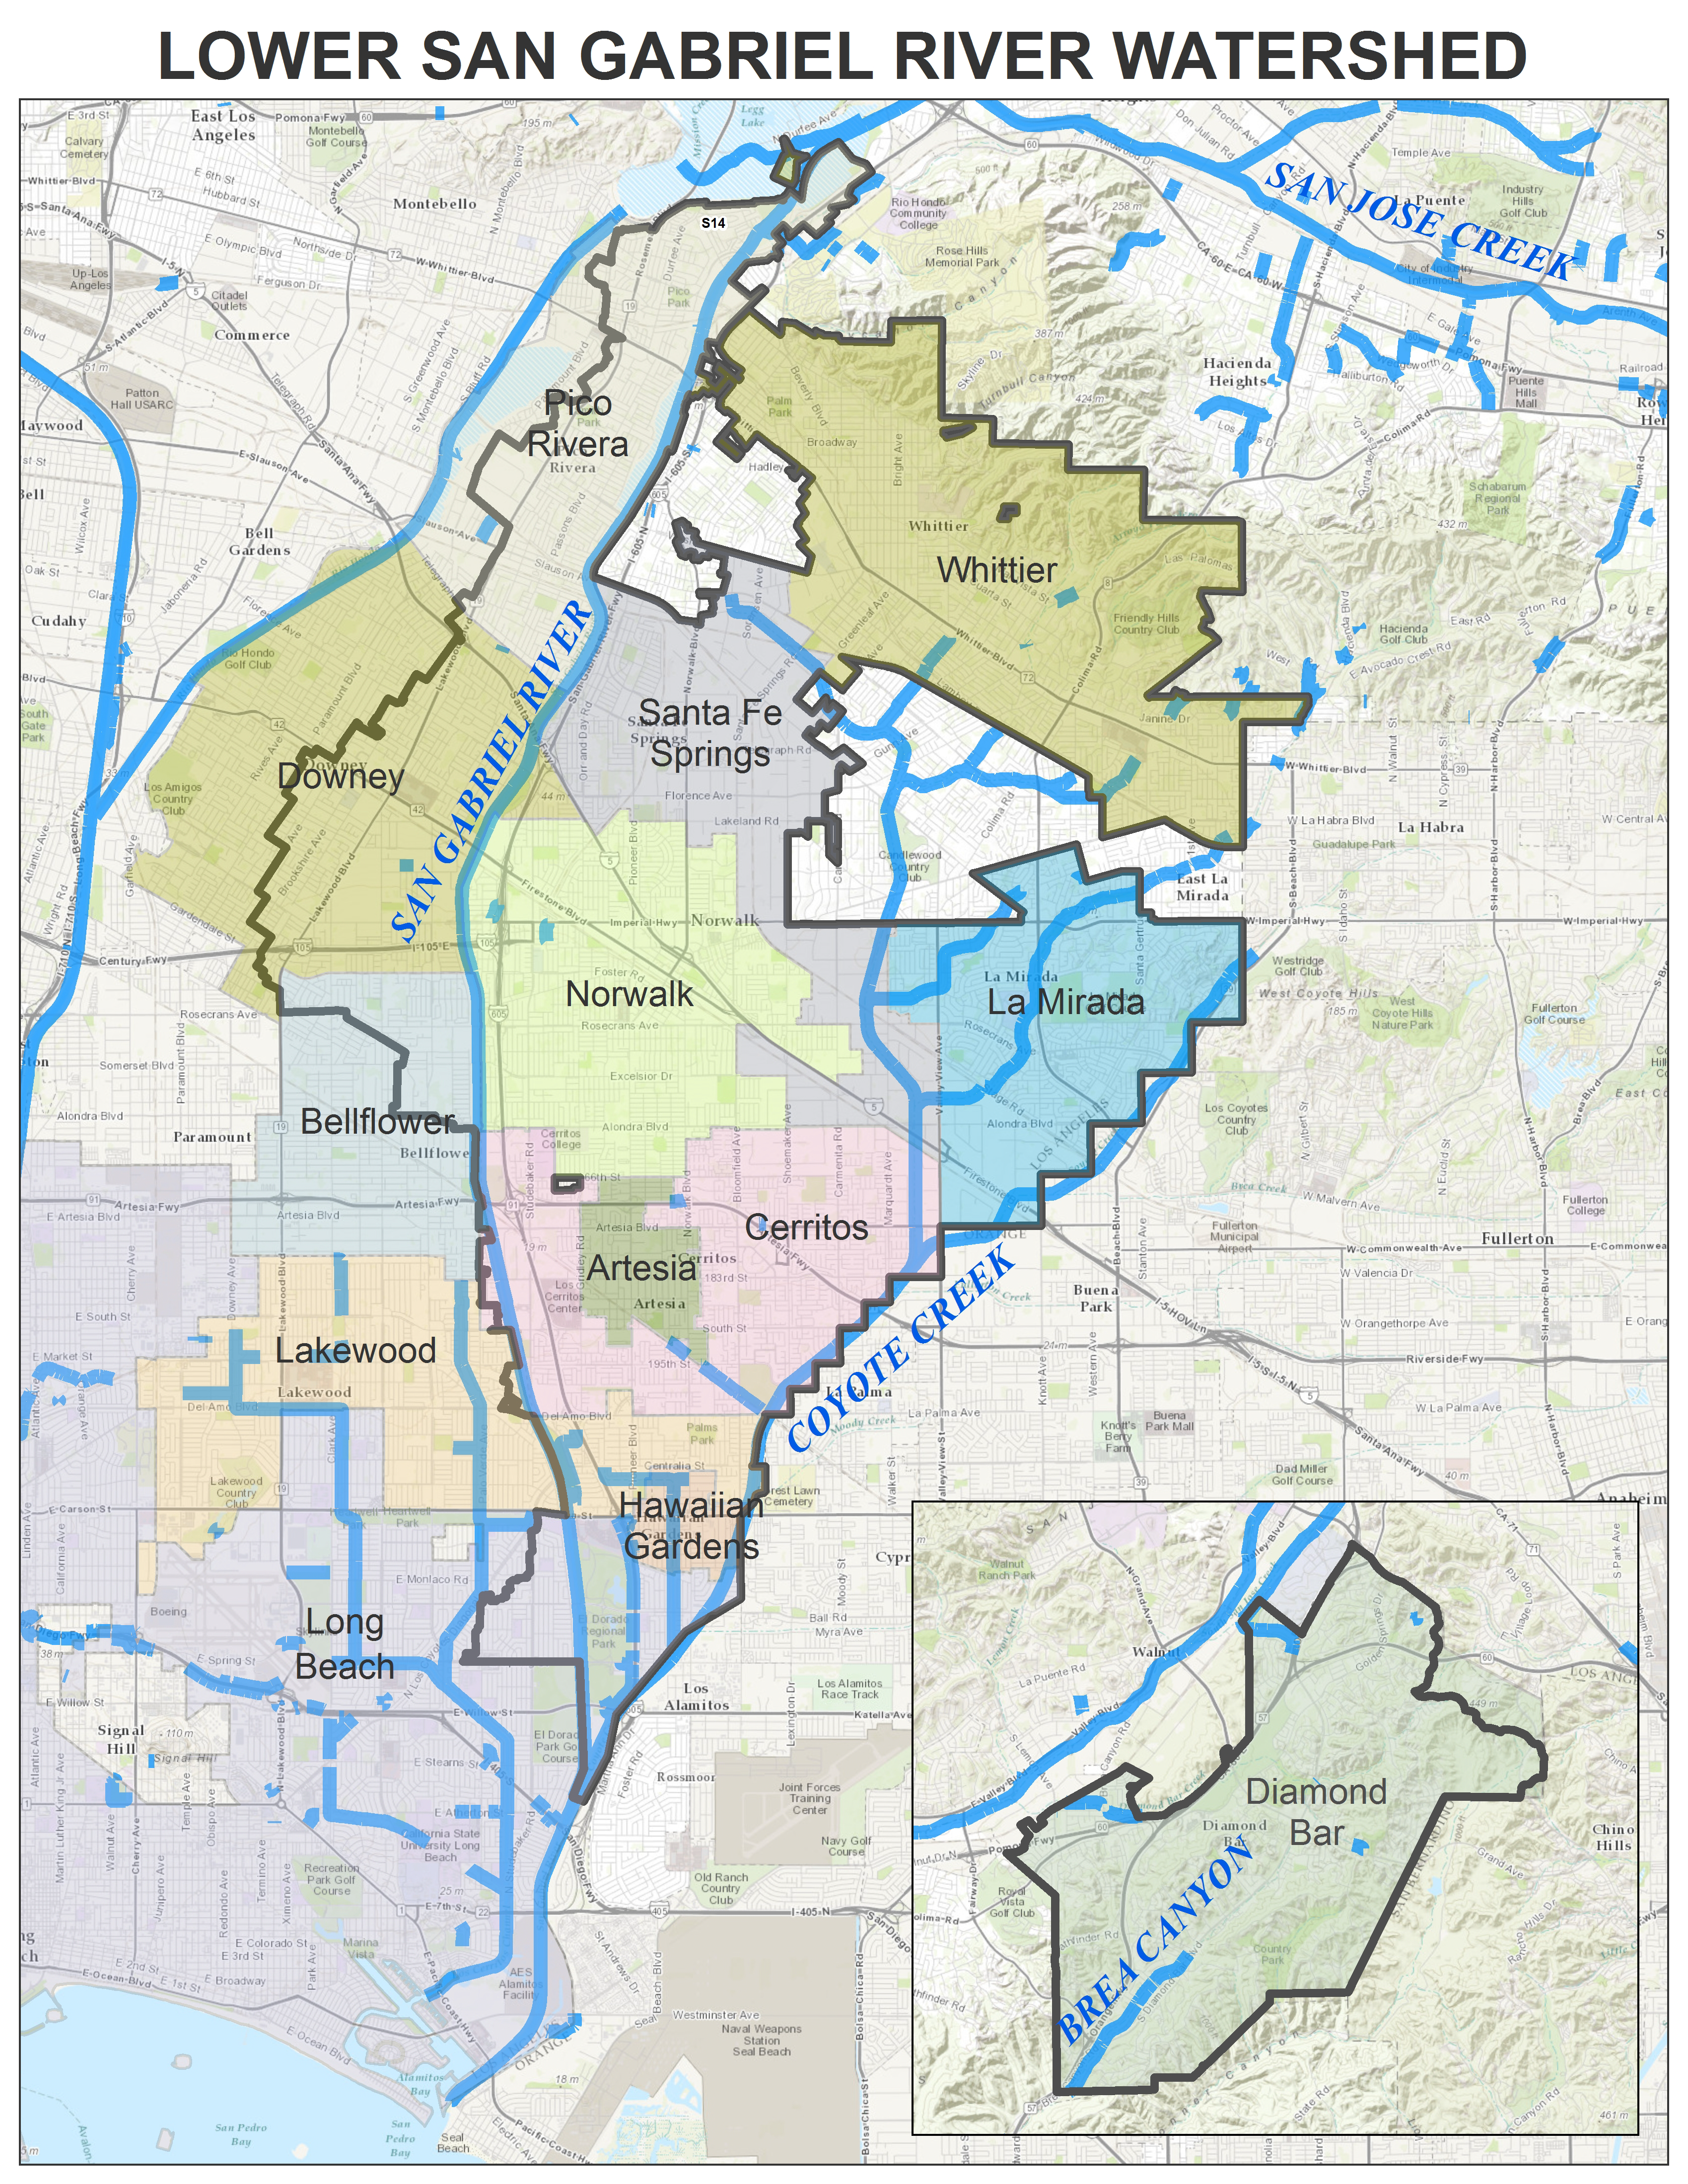 Lower San Gabriel River (LSGR) | GWMA Gateway Water ... on antelope valley map, la county map, pico rivera, east fork san gabriel river map, south bay, los angeles, central valley map, central san diego map, south los angeles, south san francisco map, san gabriel mountains map, inland empire map, west covina map, baldwin park, orange county, hacienda heights map, san dimas, san gabriel river, diamond bar, greater san diego map, san diego, el monte, mission valley san diego map, death valley ca map, city of san fernando map, la puente map, east los angeles, santa fe dam recreation area map, west covina, antelope valley, valley of fire nevada map, sacramento valley map, temple city, san fernando valley, long beach map, los angeles map, san gabriel mountains,